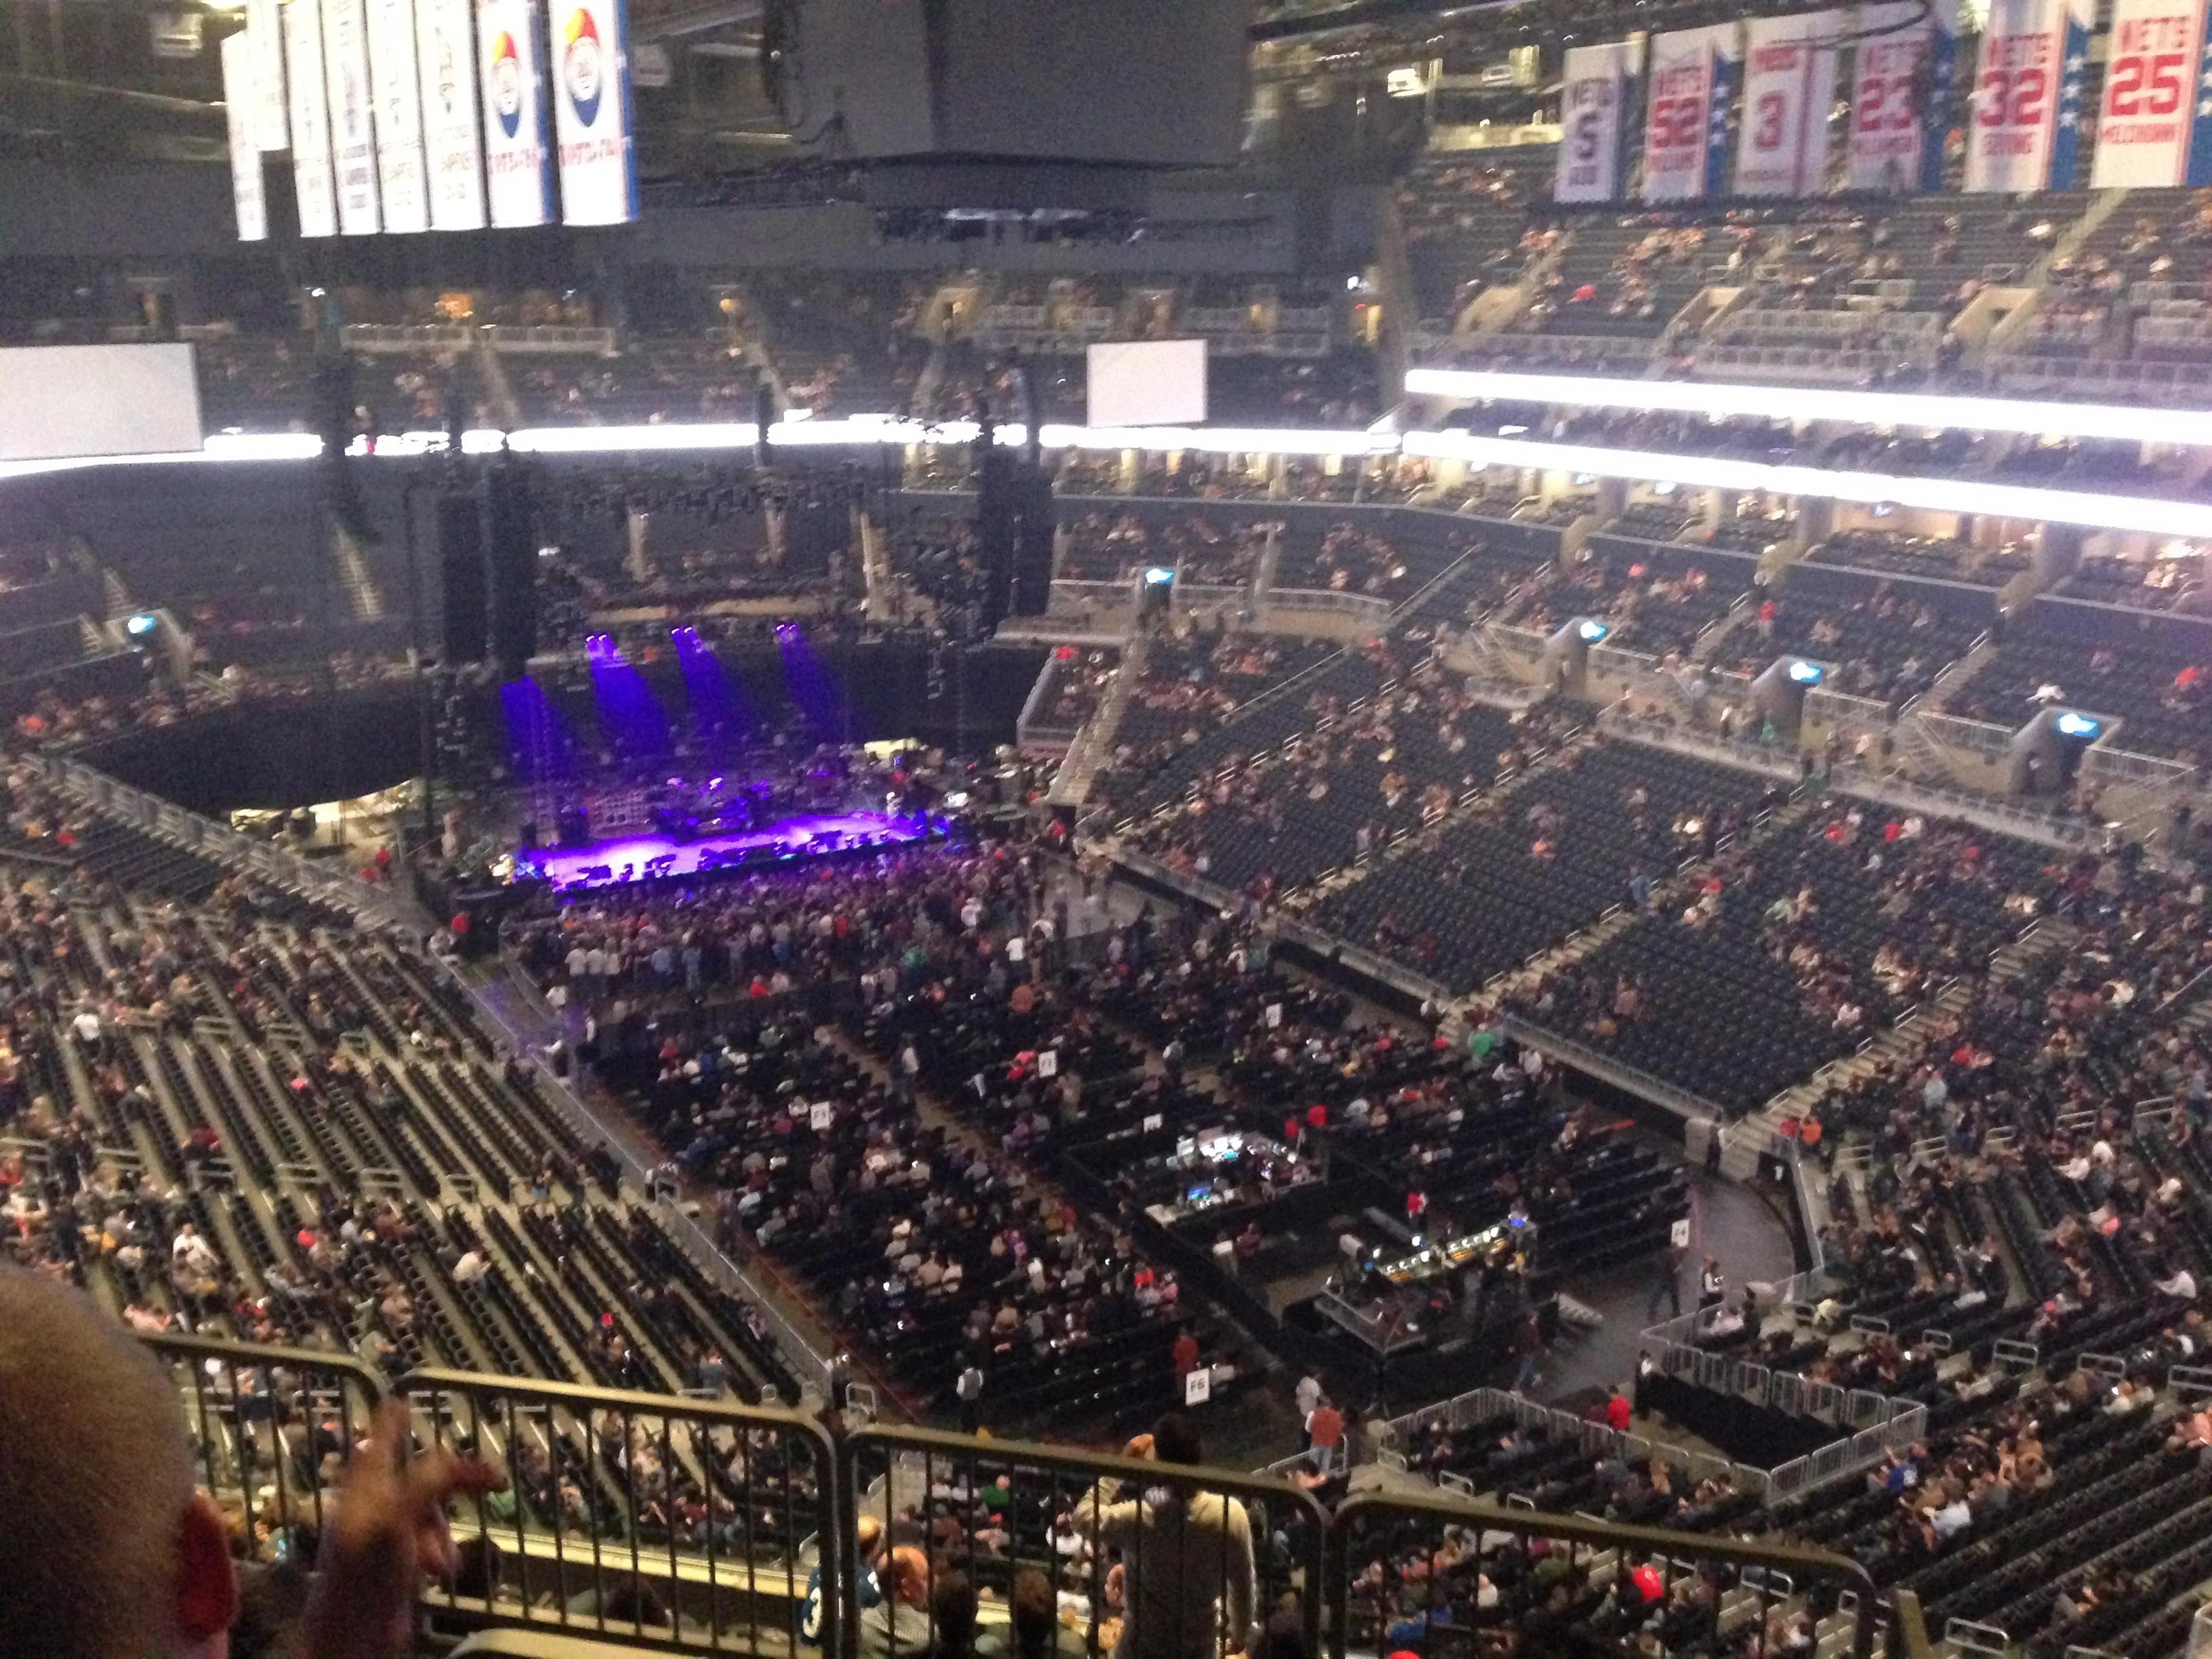 Best Seats At Prudential Center For Concert